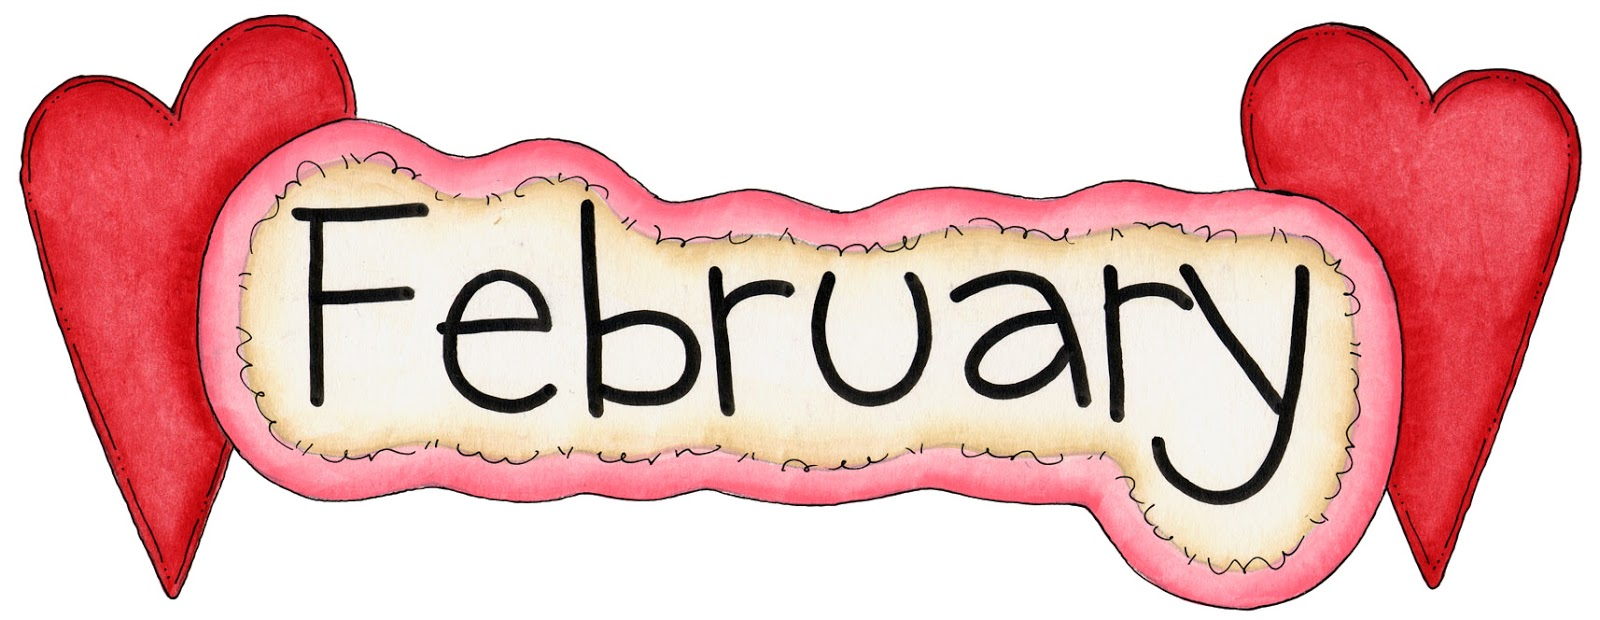 1600x620 Fantastic Clip Art For February Image